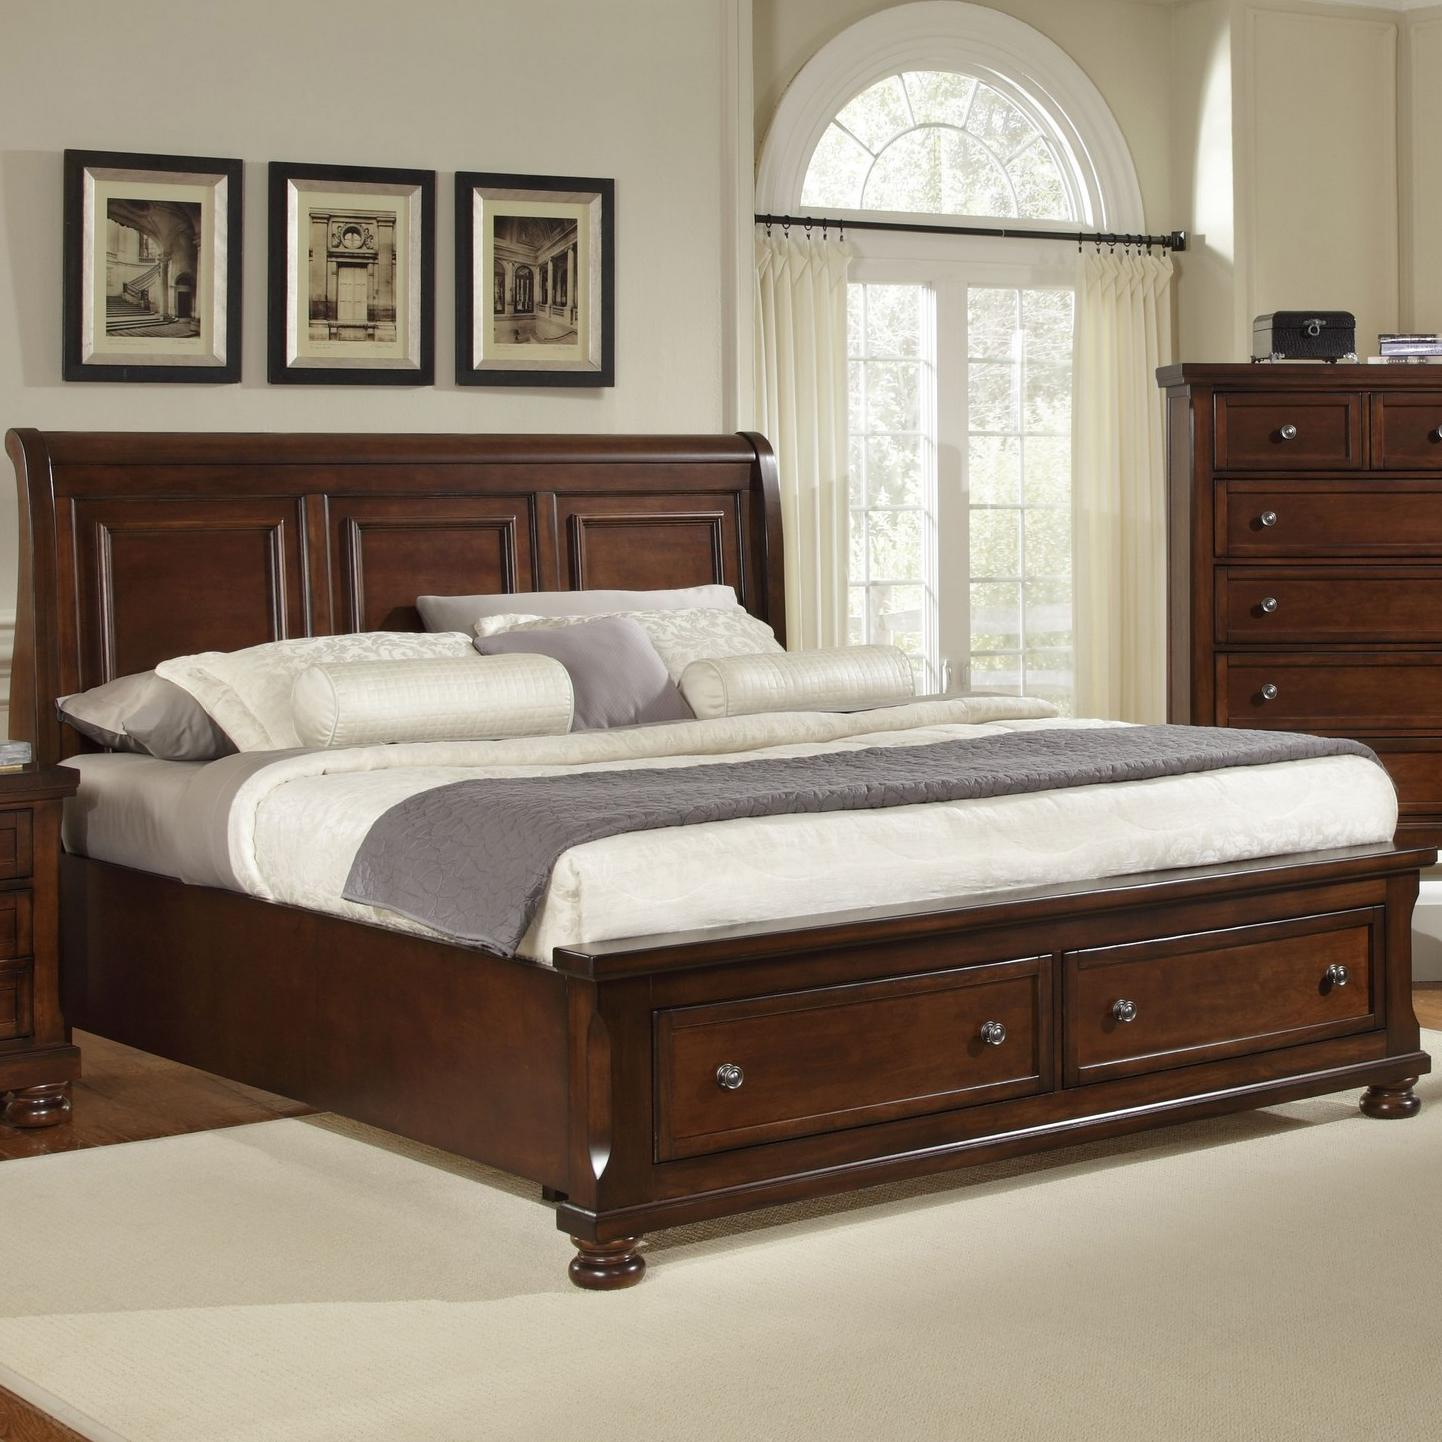 Vaughan bassett reflections king storage bed with sleigh for Bed frame and dresser set